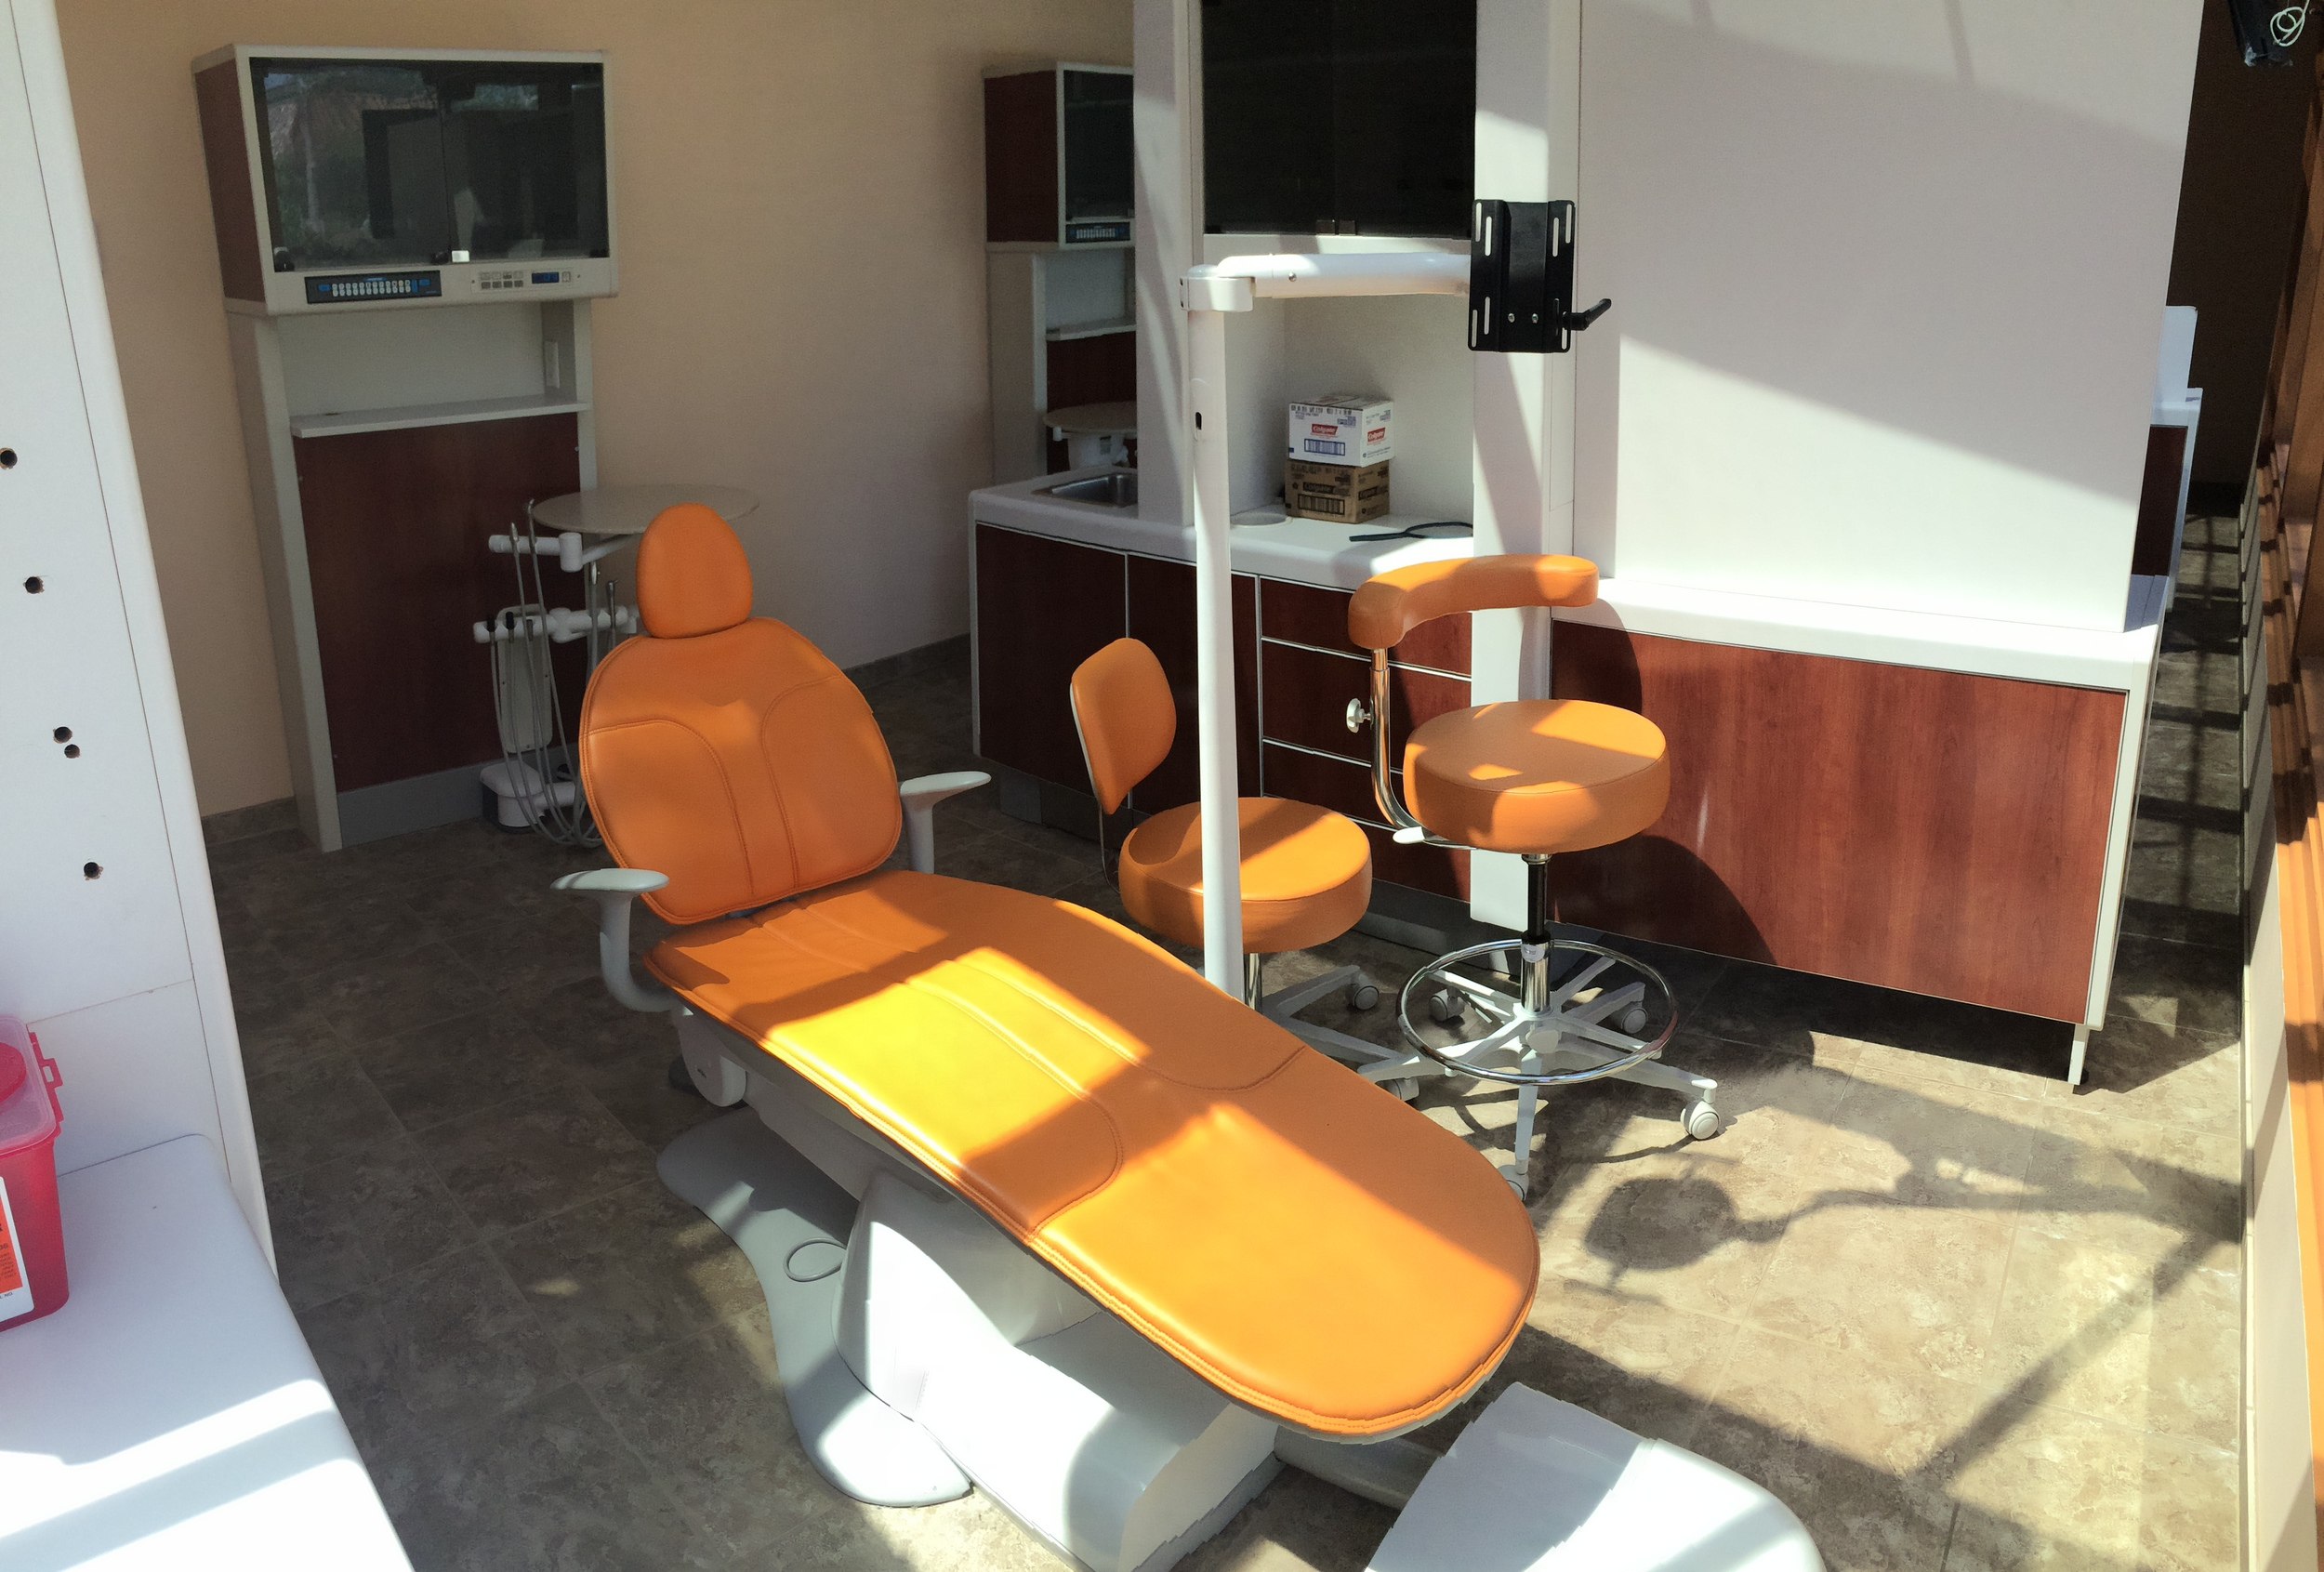 town-center-dentistry-san-diego-rancho-bernardo-teeth-tooth-dentist-dental